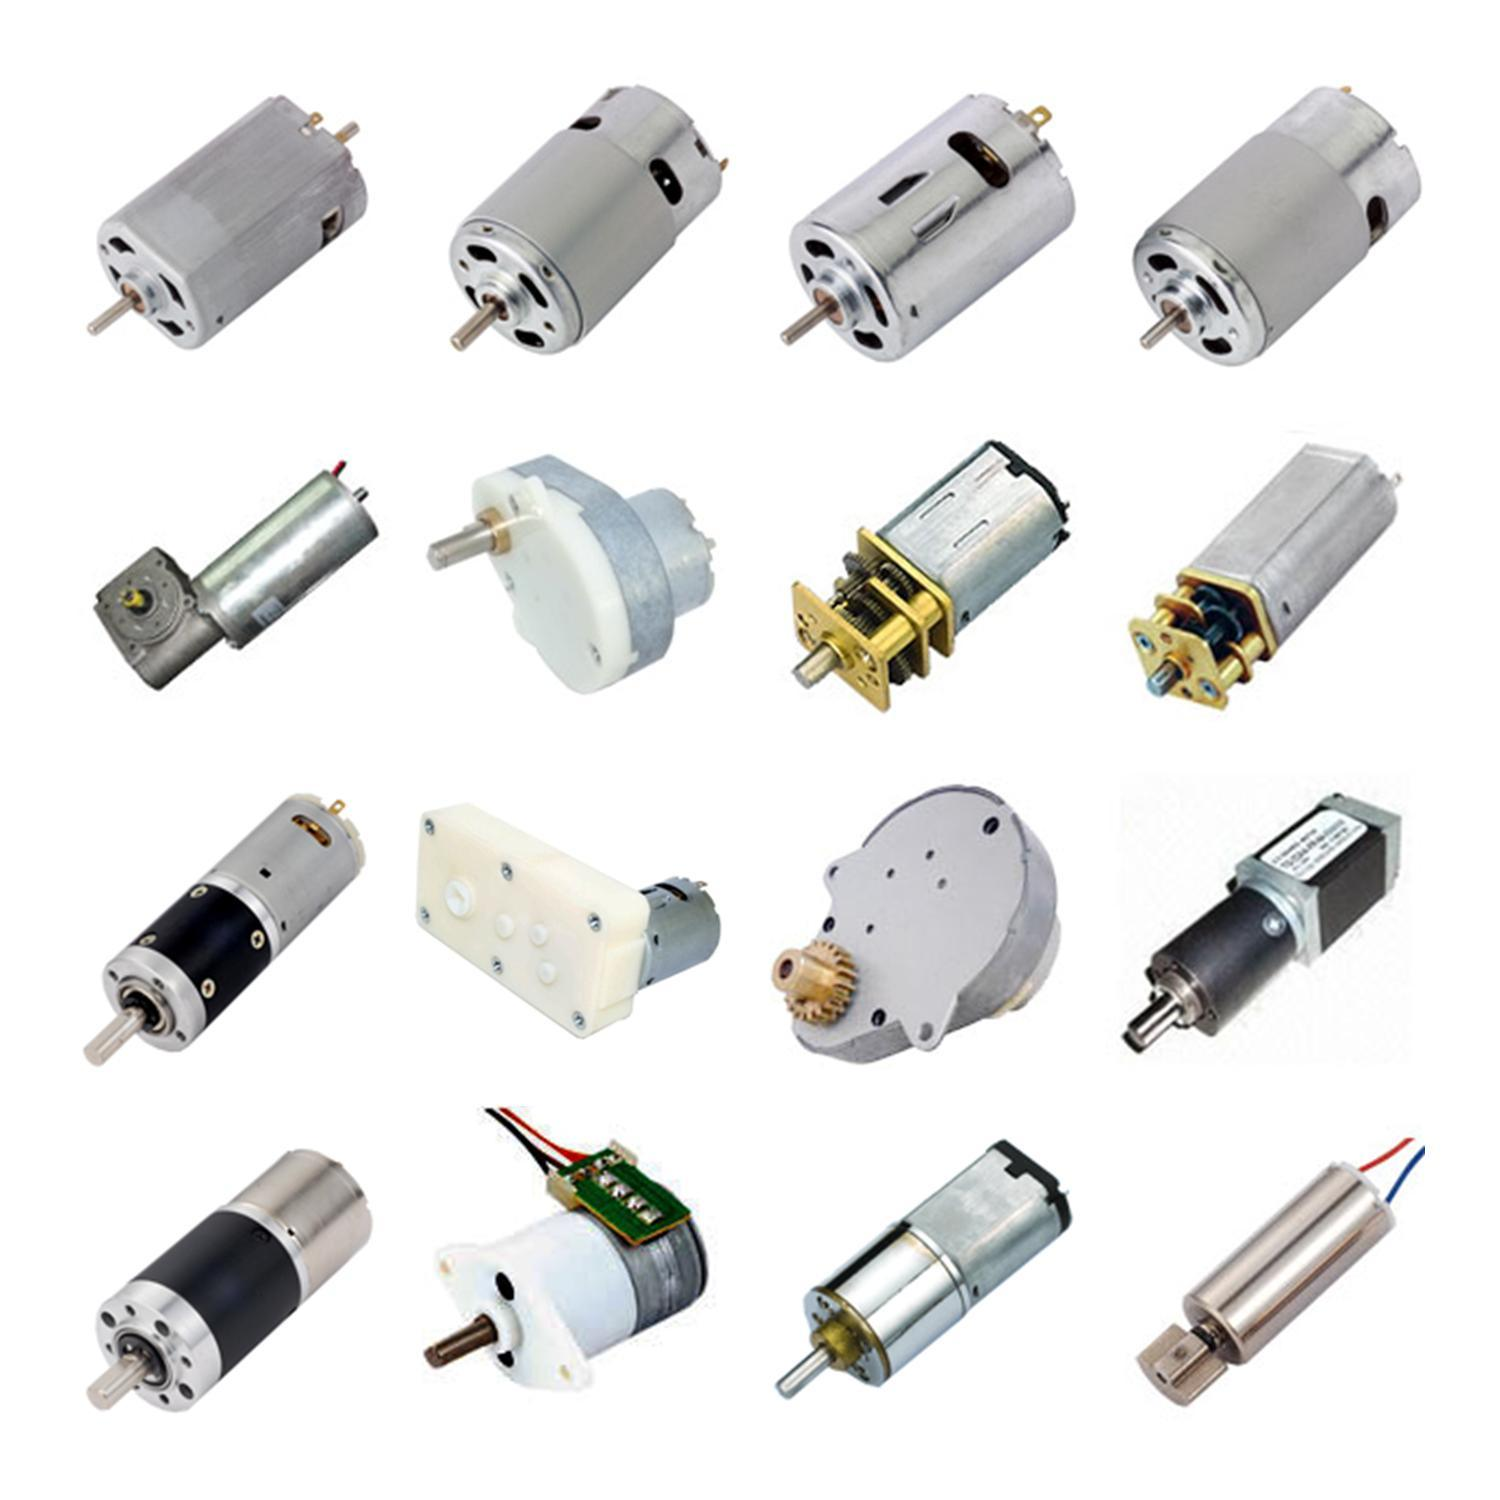 China Dc Motor For Industrial Electronic Tools China Motor Industrial